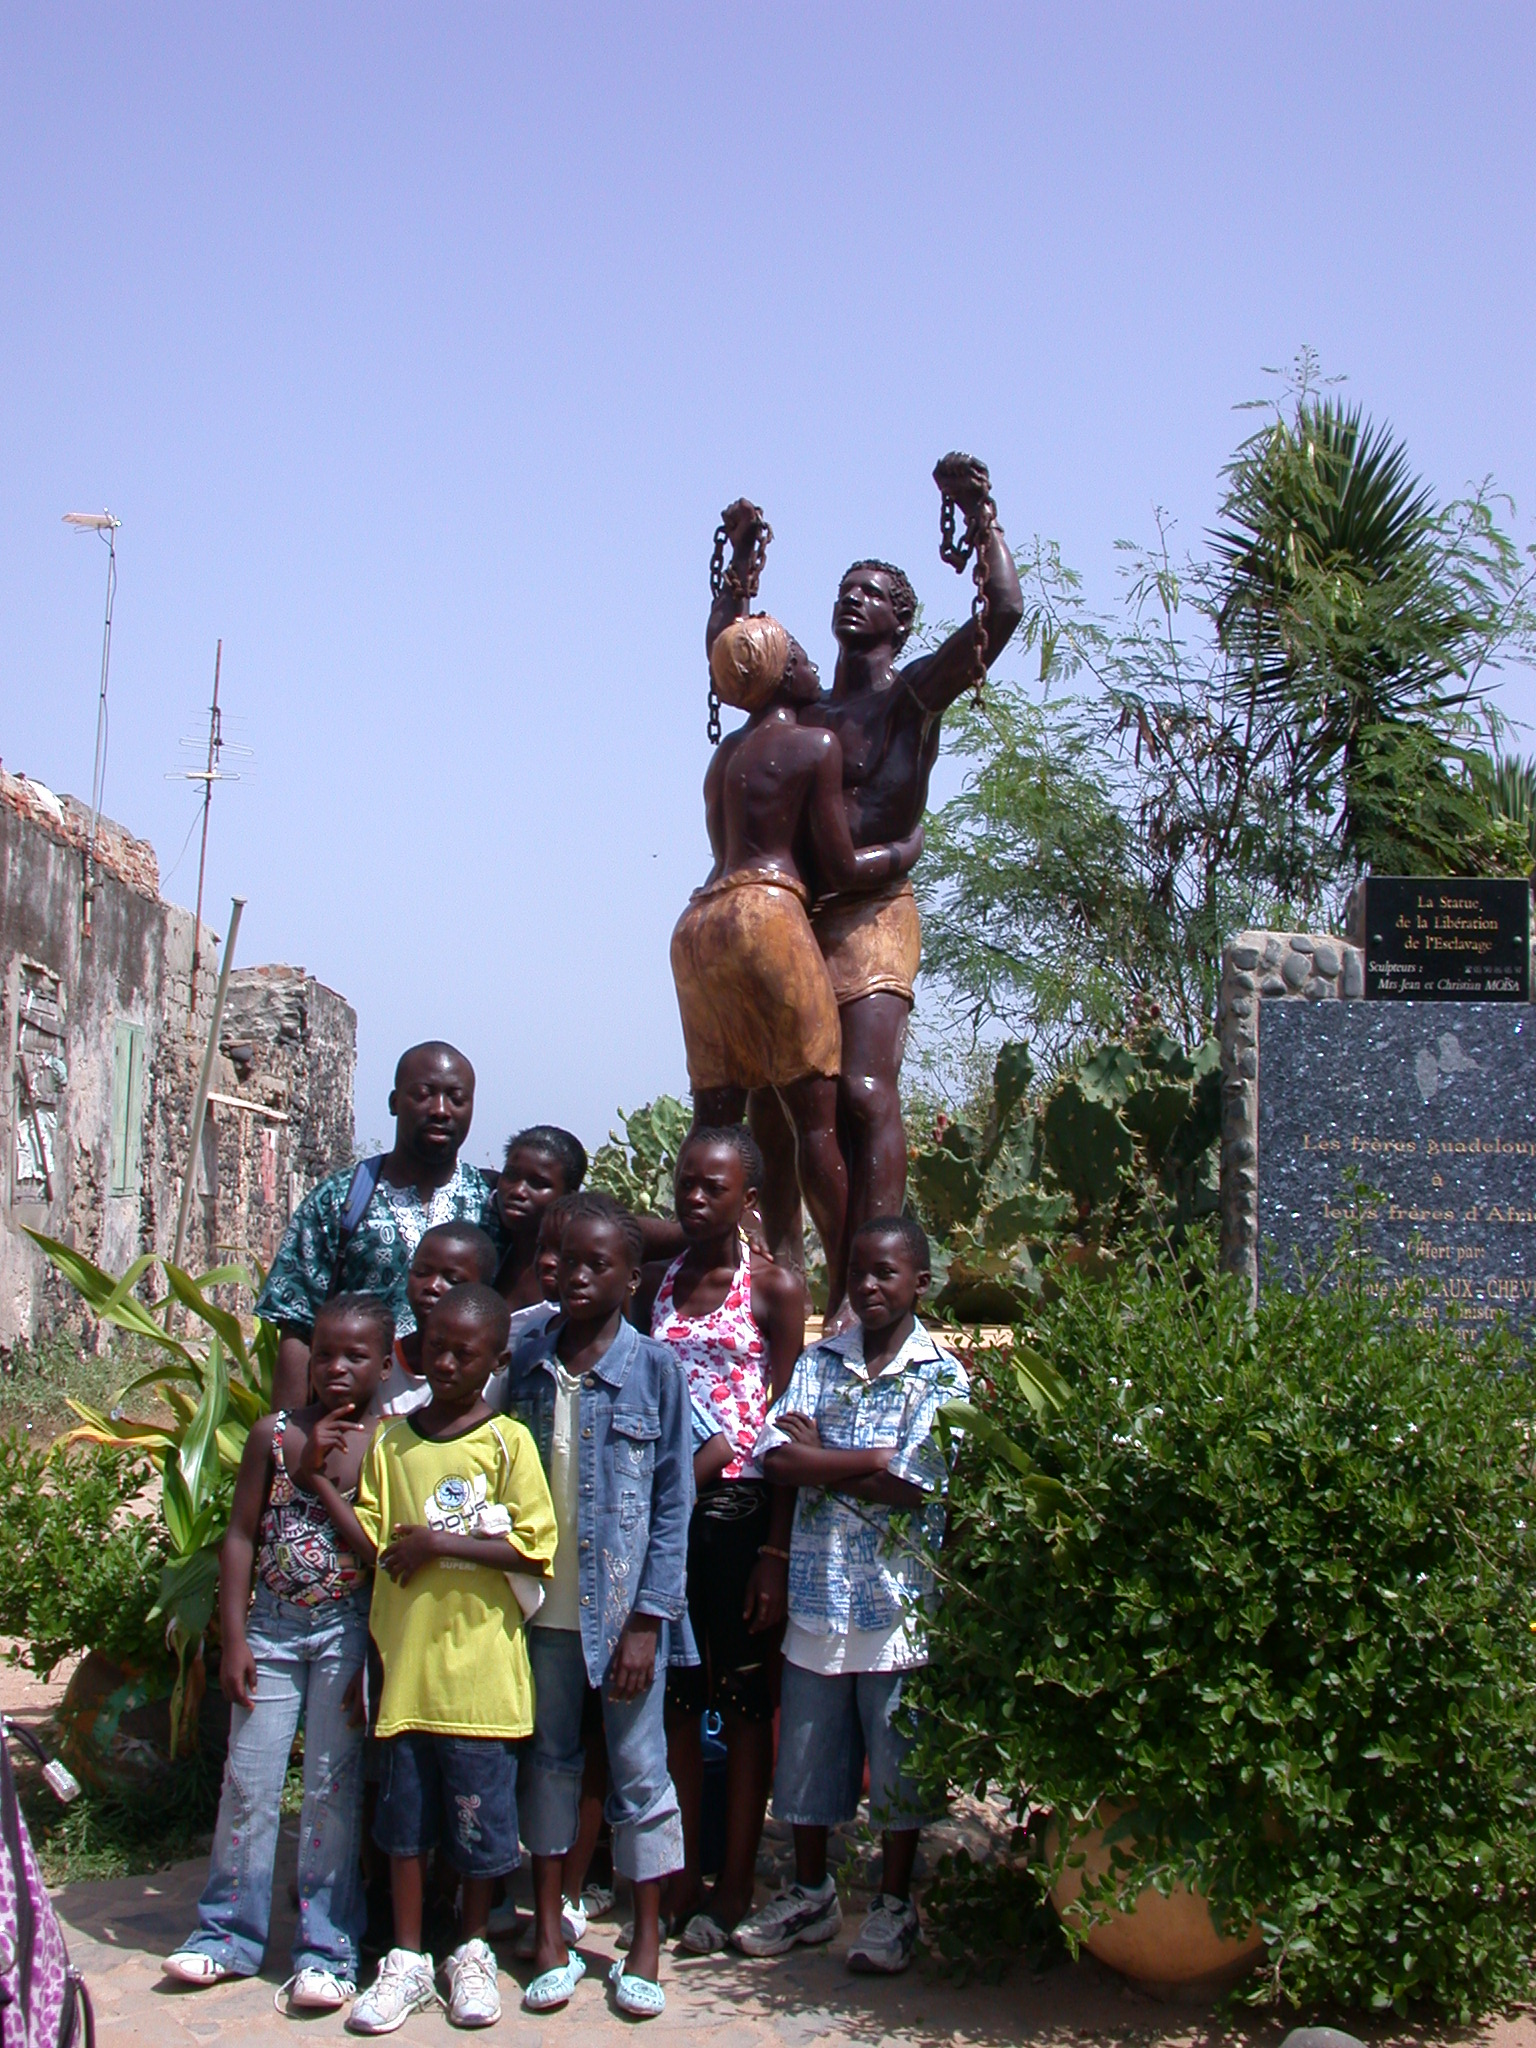 Statue of the Liberation From Slavery, Ile de Goree, Dakar, Senegal